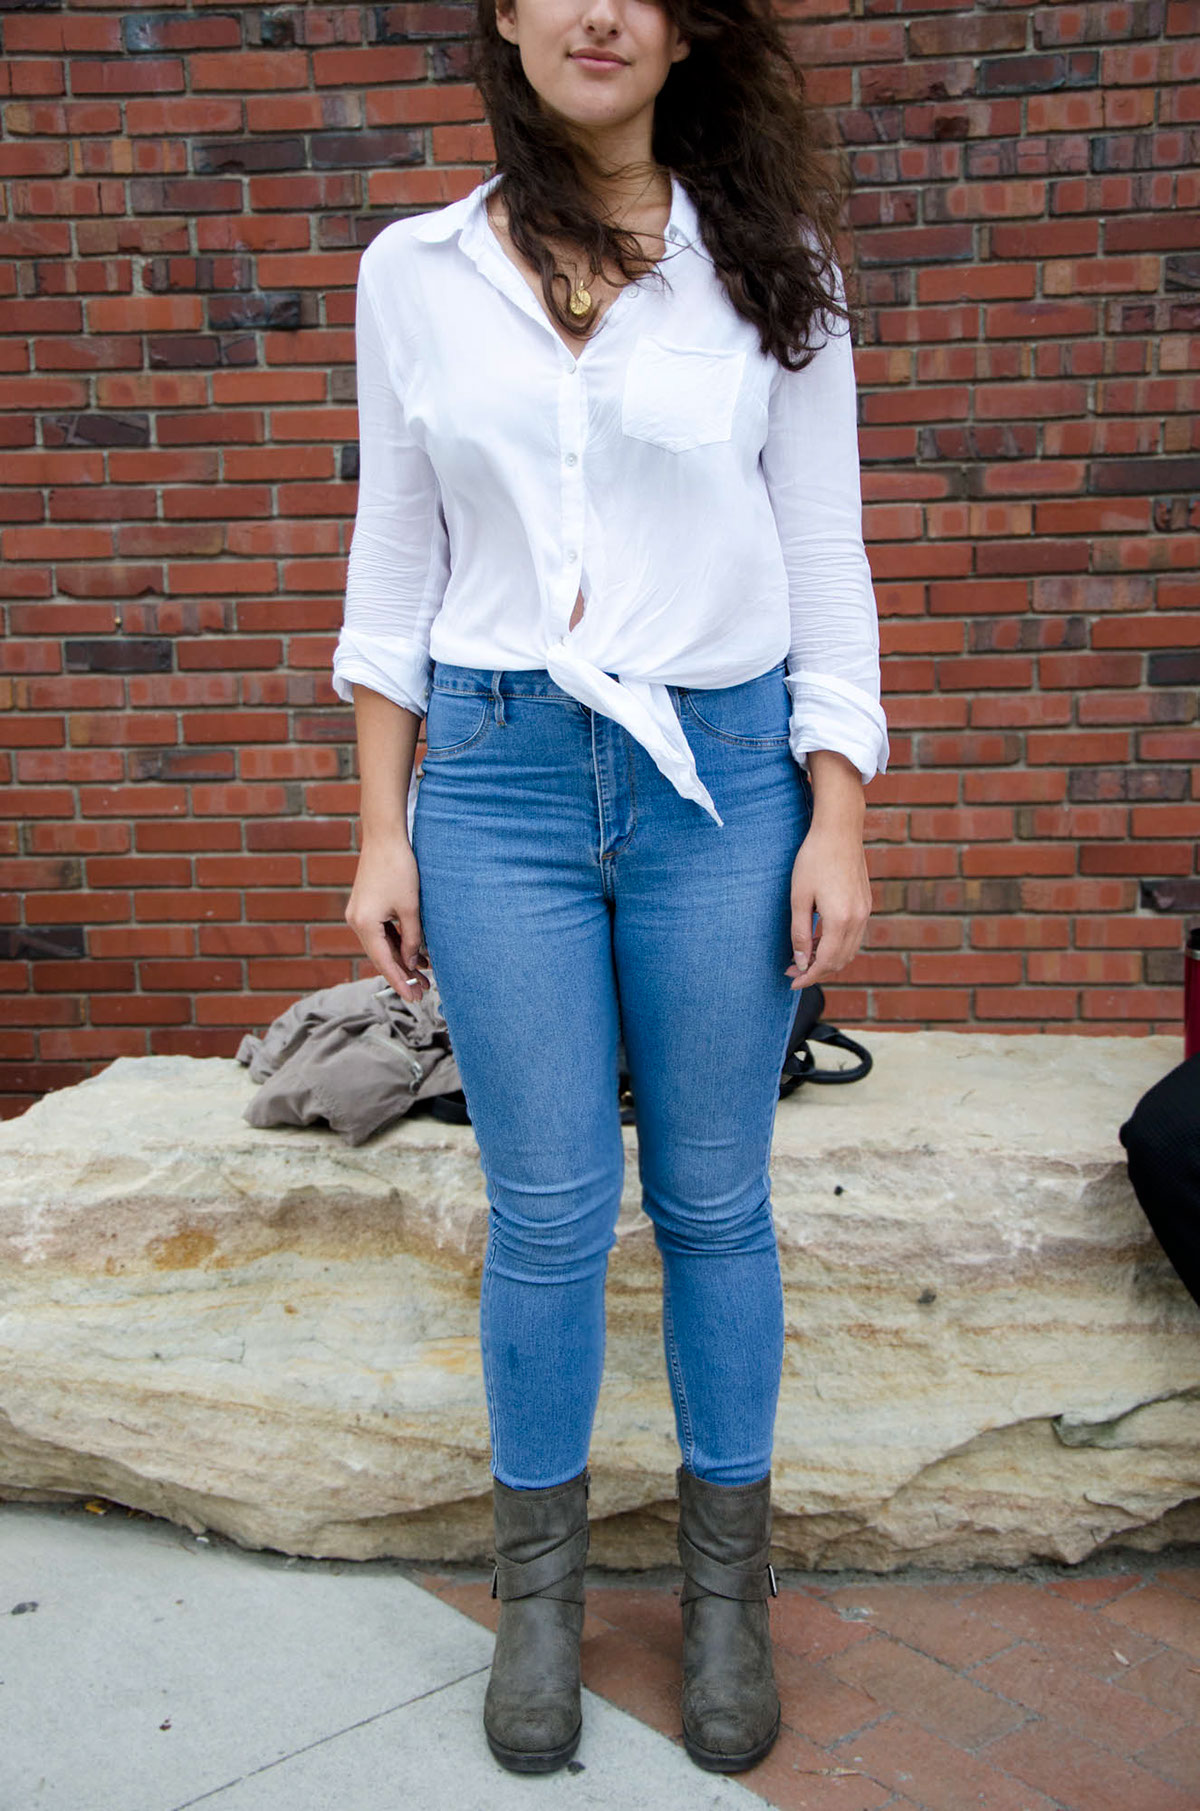 student college campus clothes Clothing typology